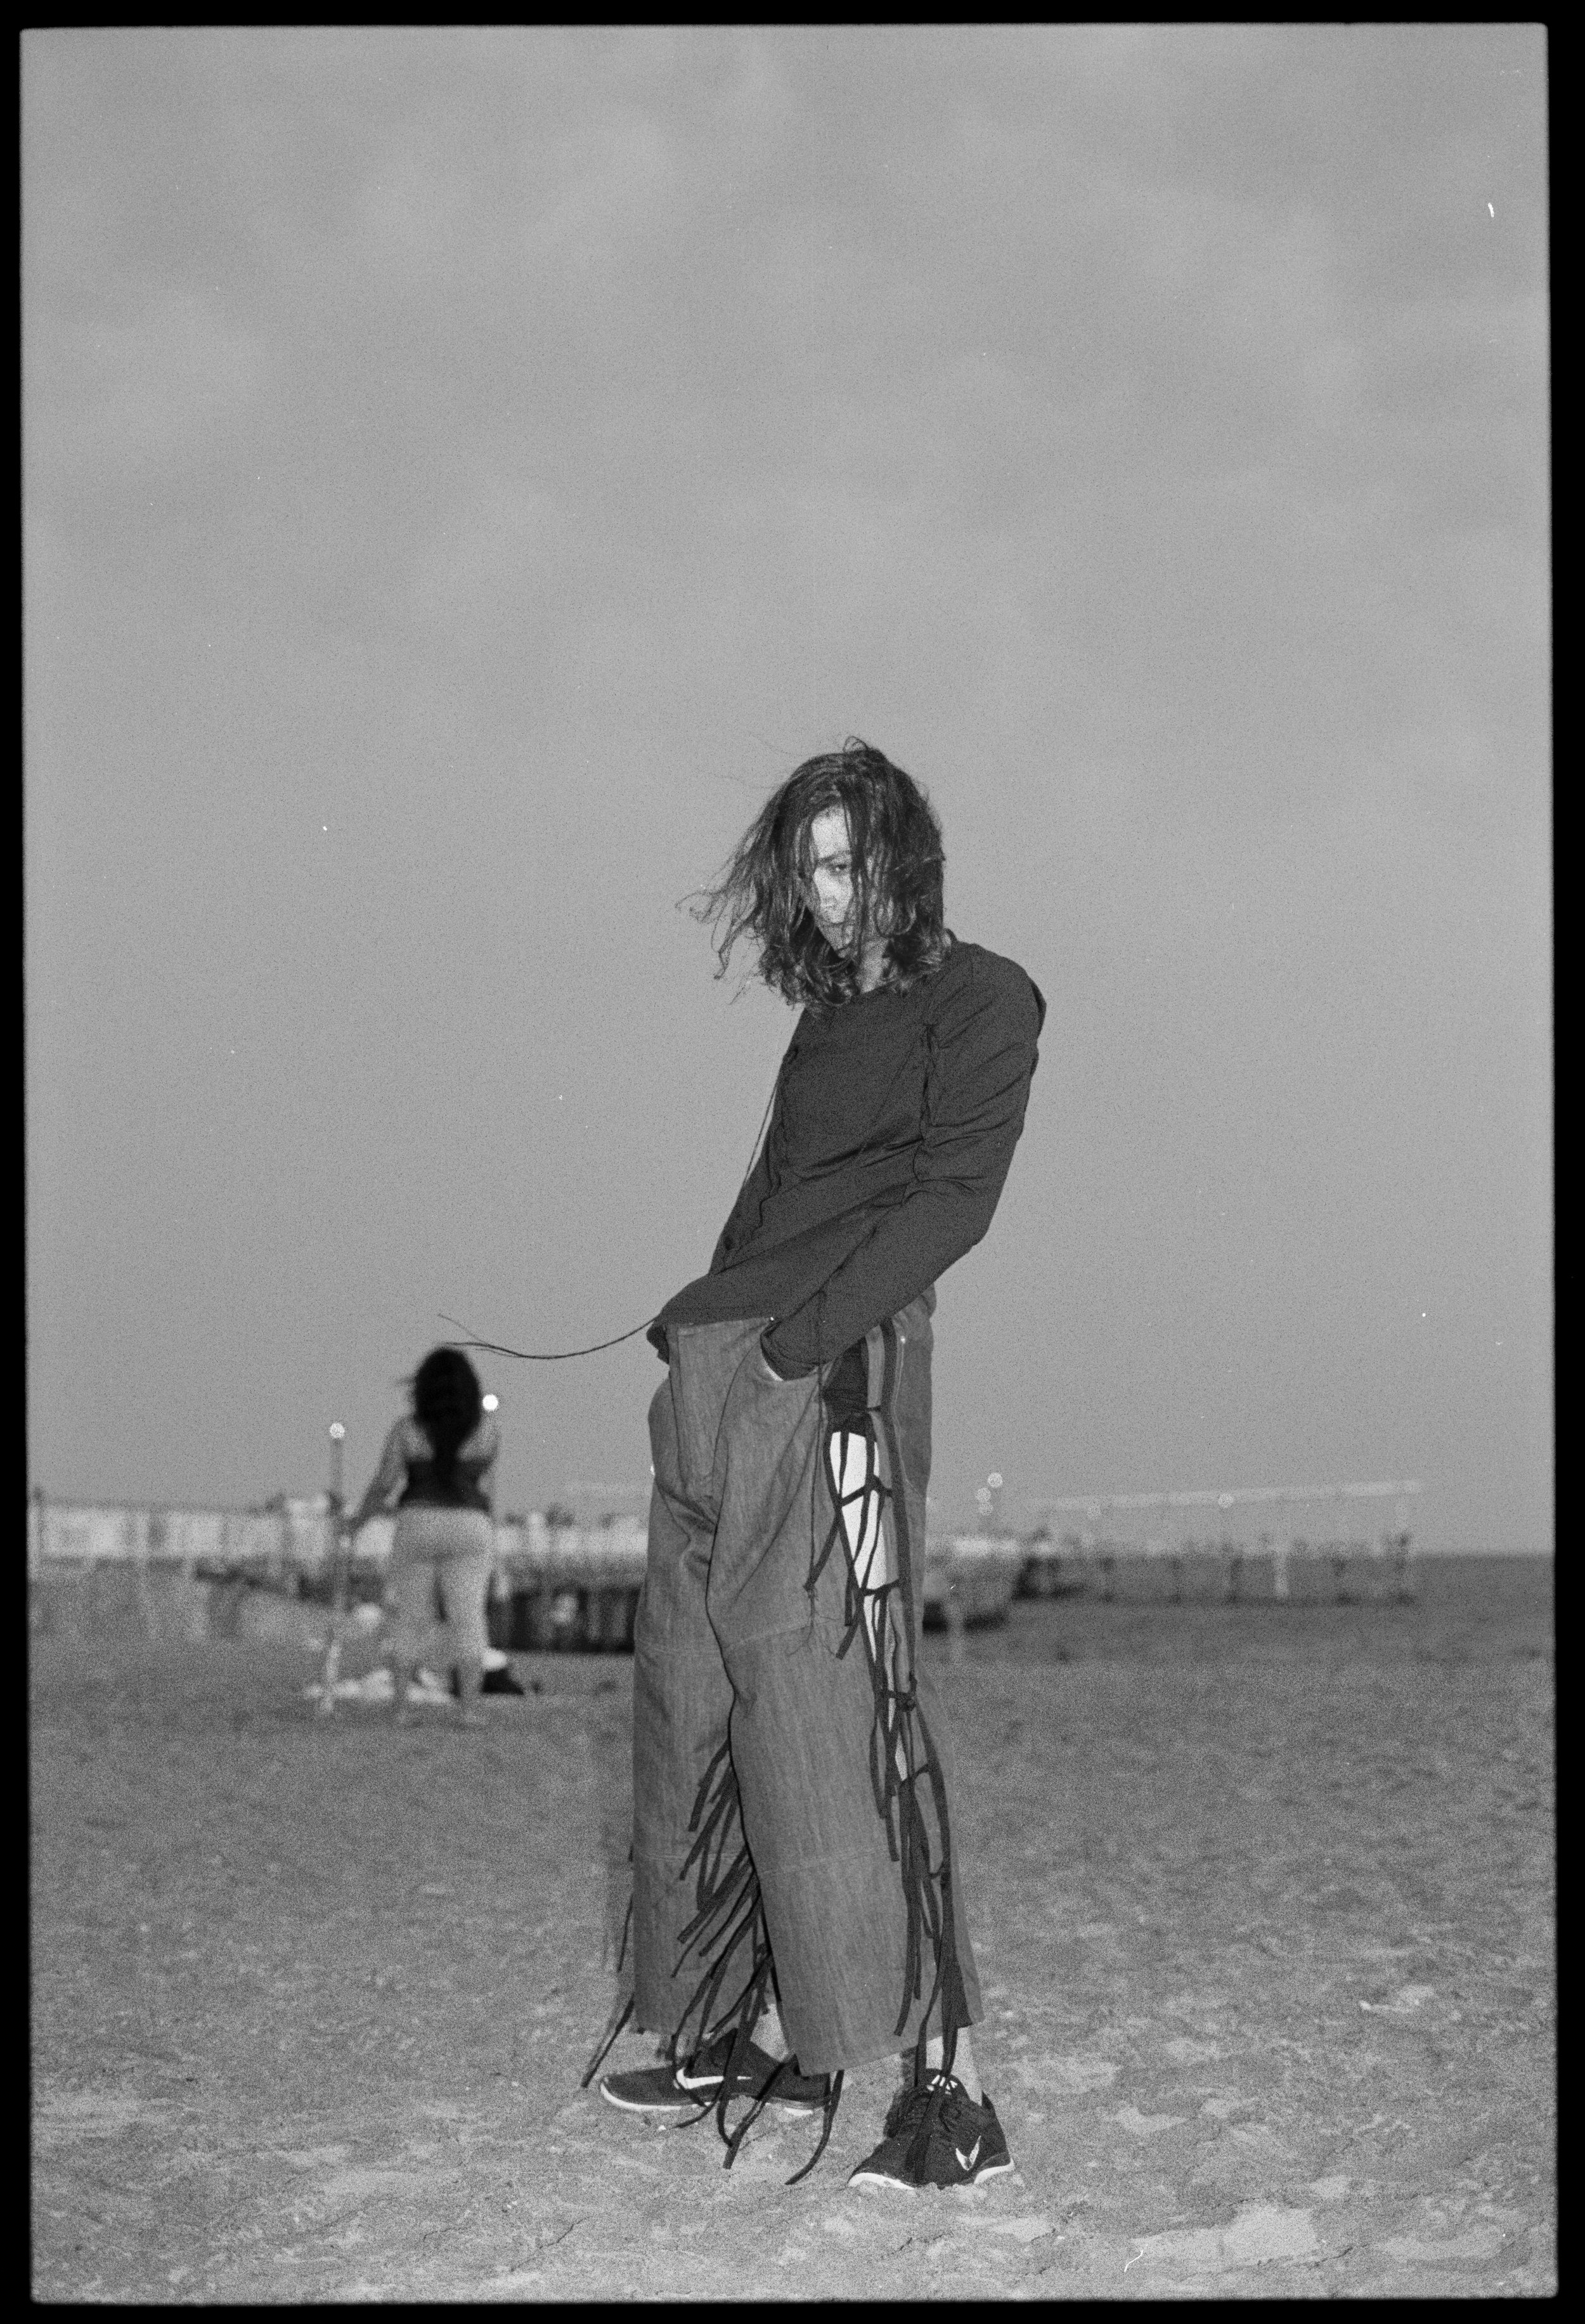 """the beach boy"" - pierce abernathy photographed by giancarlos kunhardt for phosphenes #2"